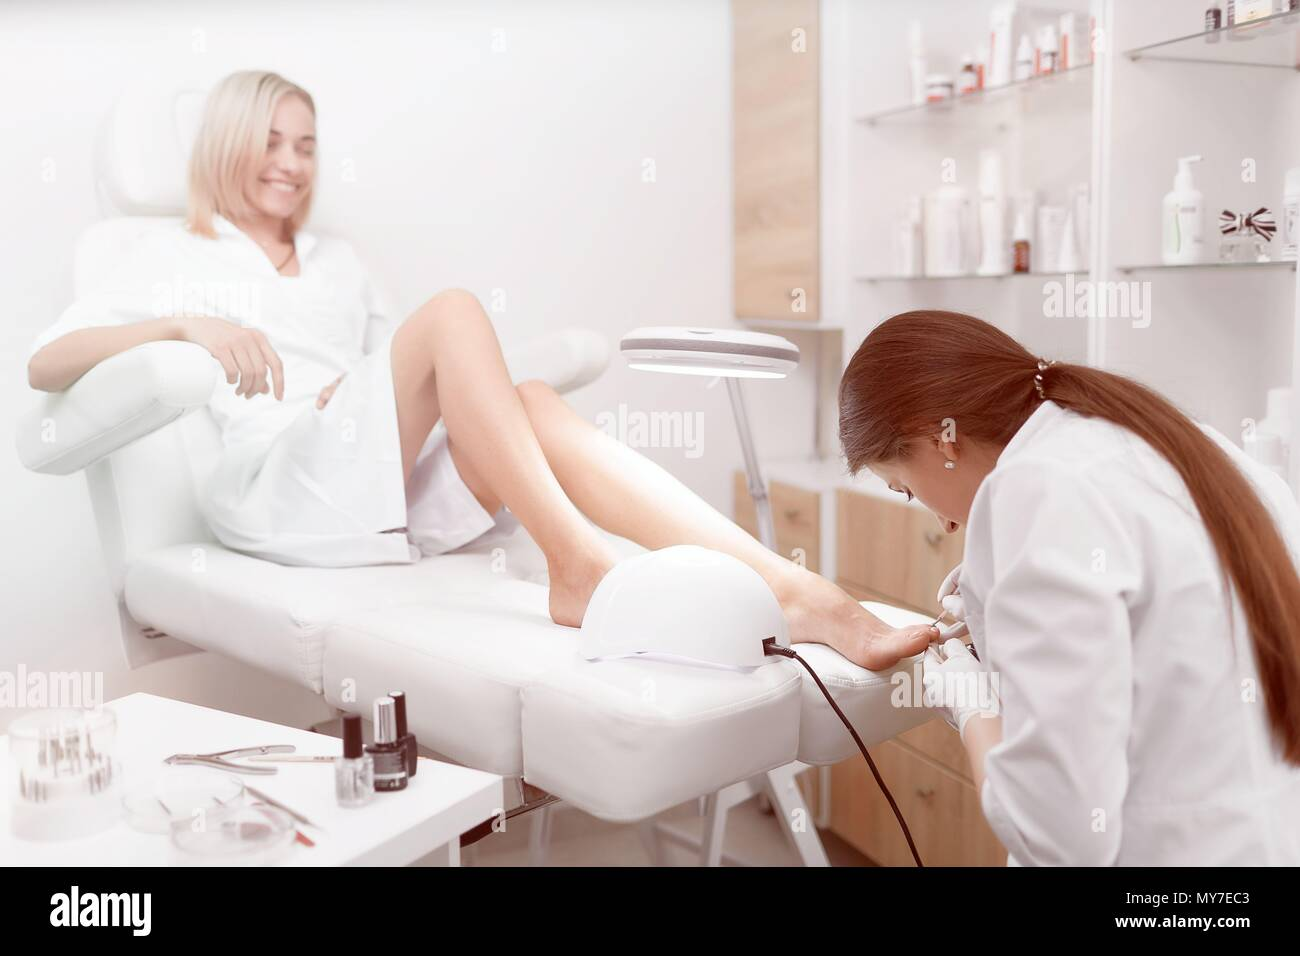 View of specialist in white working in beauty salon, making pedicure for pretty and young client in arm chair. Female professional cleaning cuticle ar - Stock Image